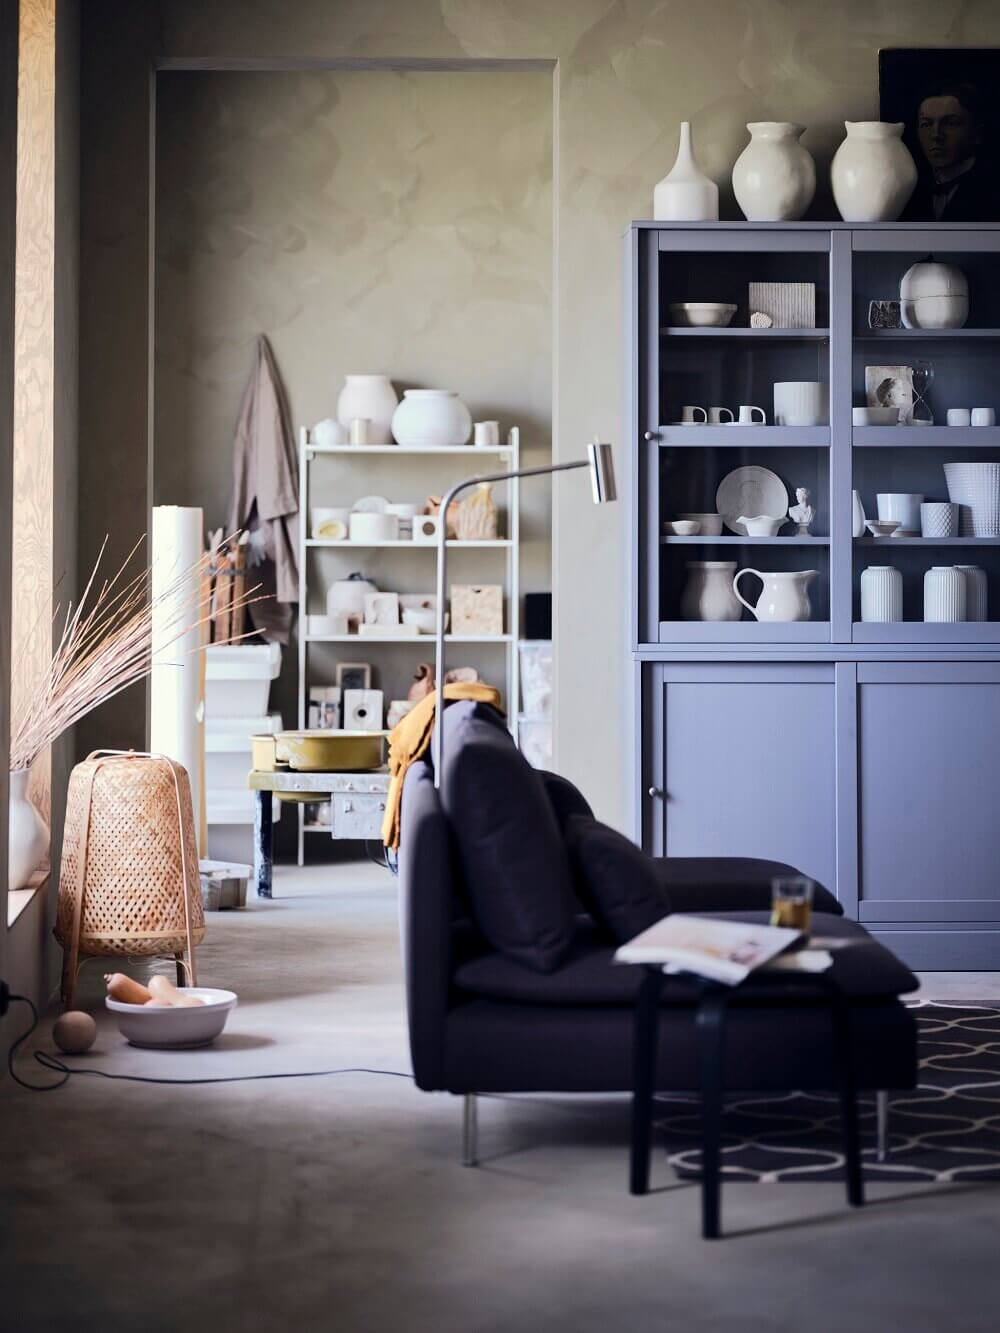 Clever and Stylish Home Organizing Ideas From IKEA